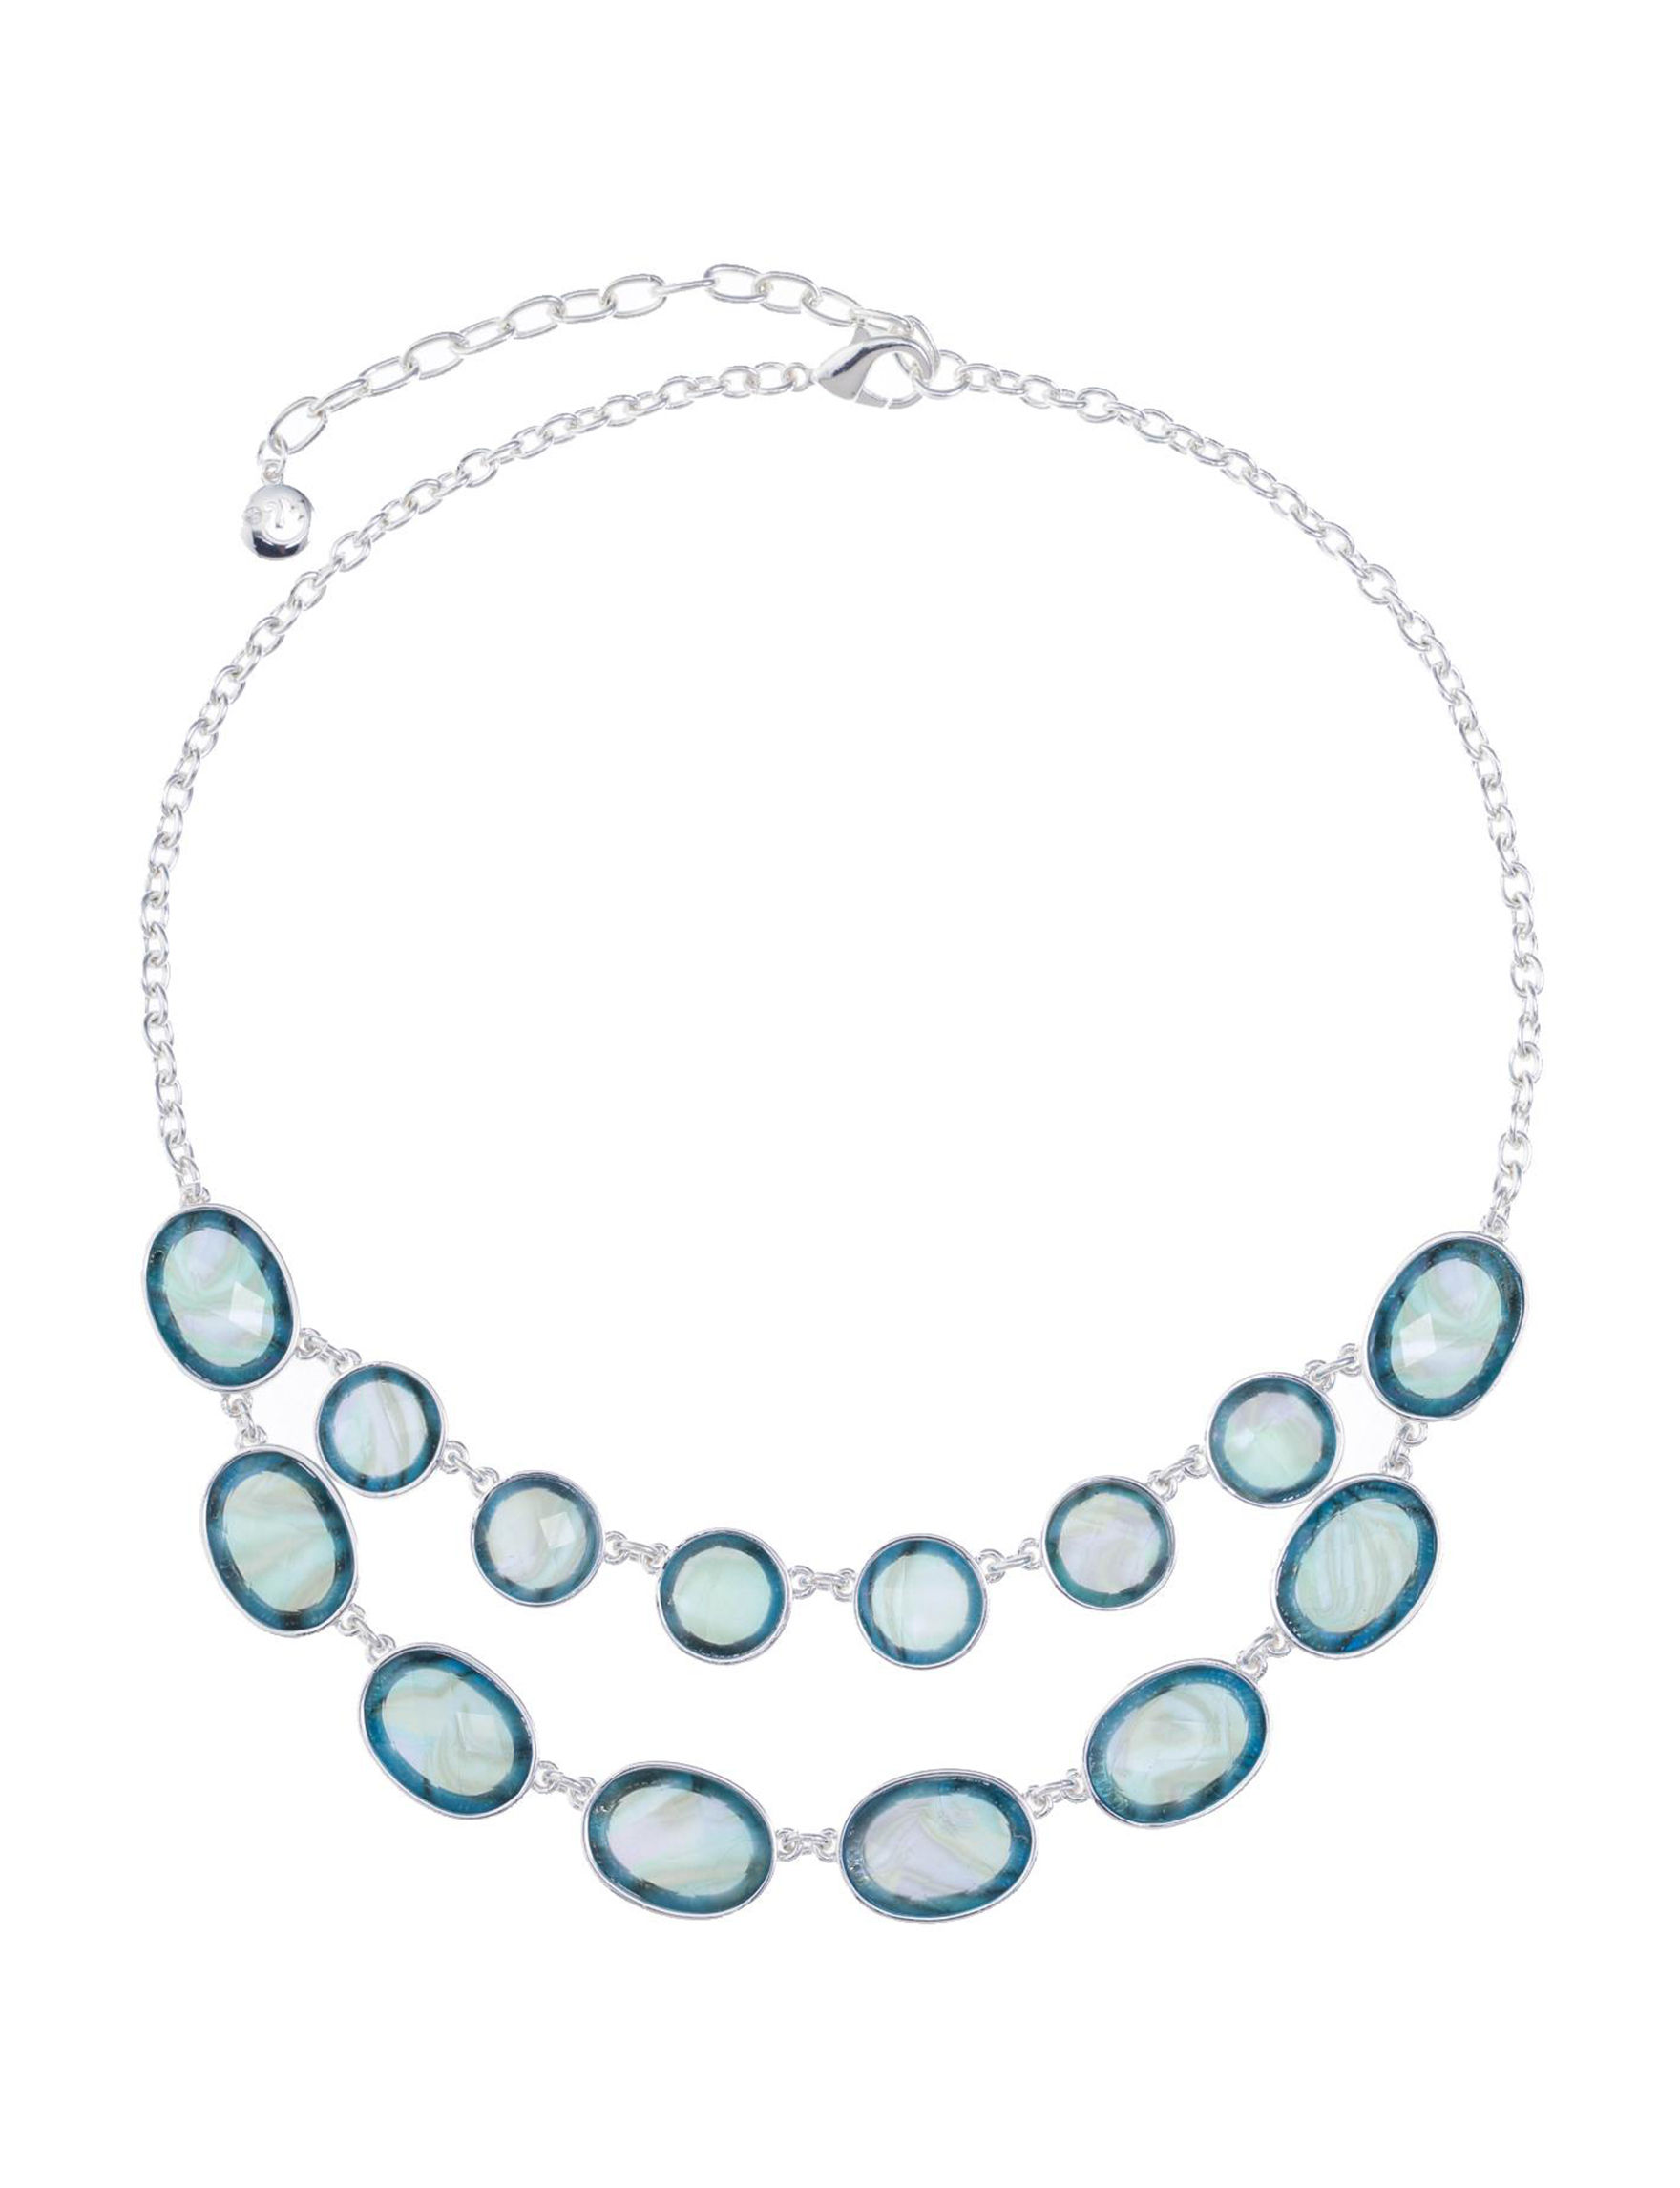 Gloria Vanderbilt Silver / Blue Stone Necklaces & Pendants Fashion Jewelry